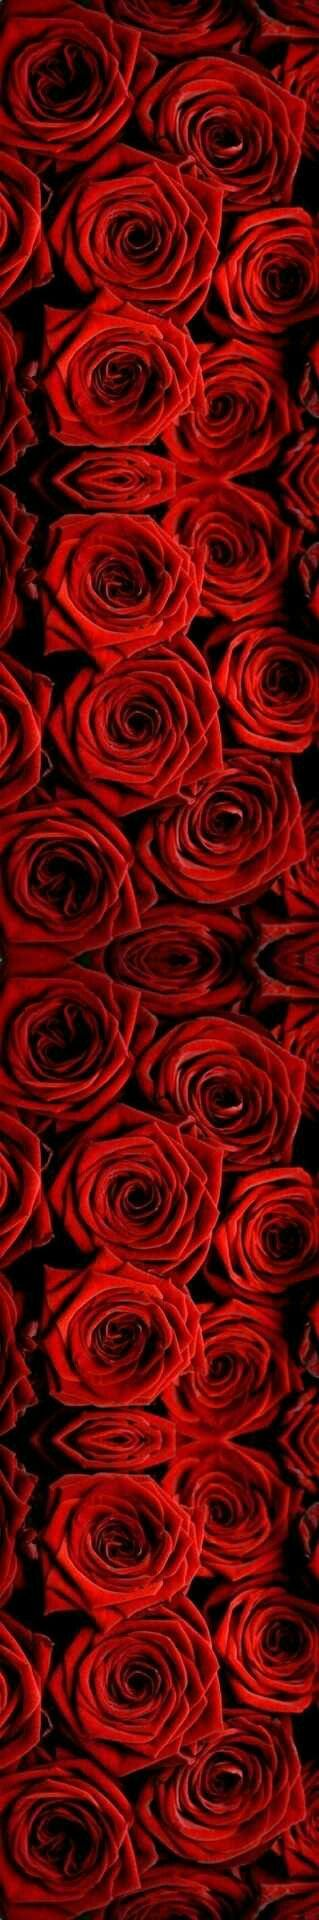 Aug 18 Prompt 3 Gifts Red Read Written Red Roses So